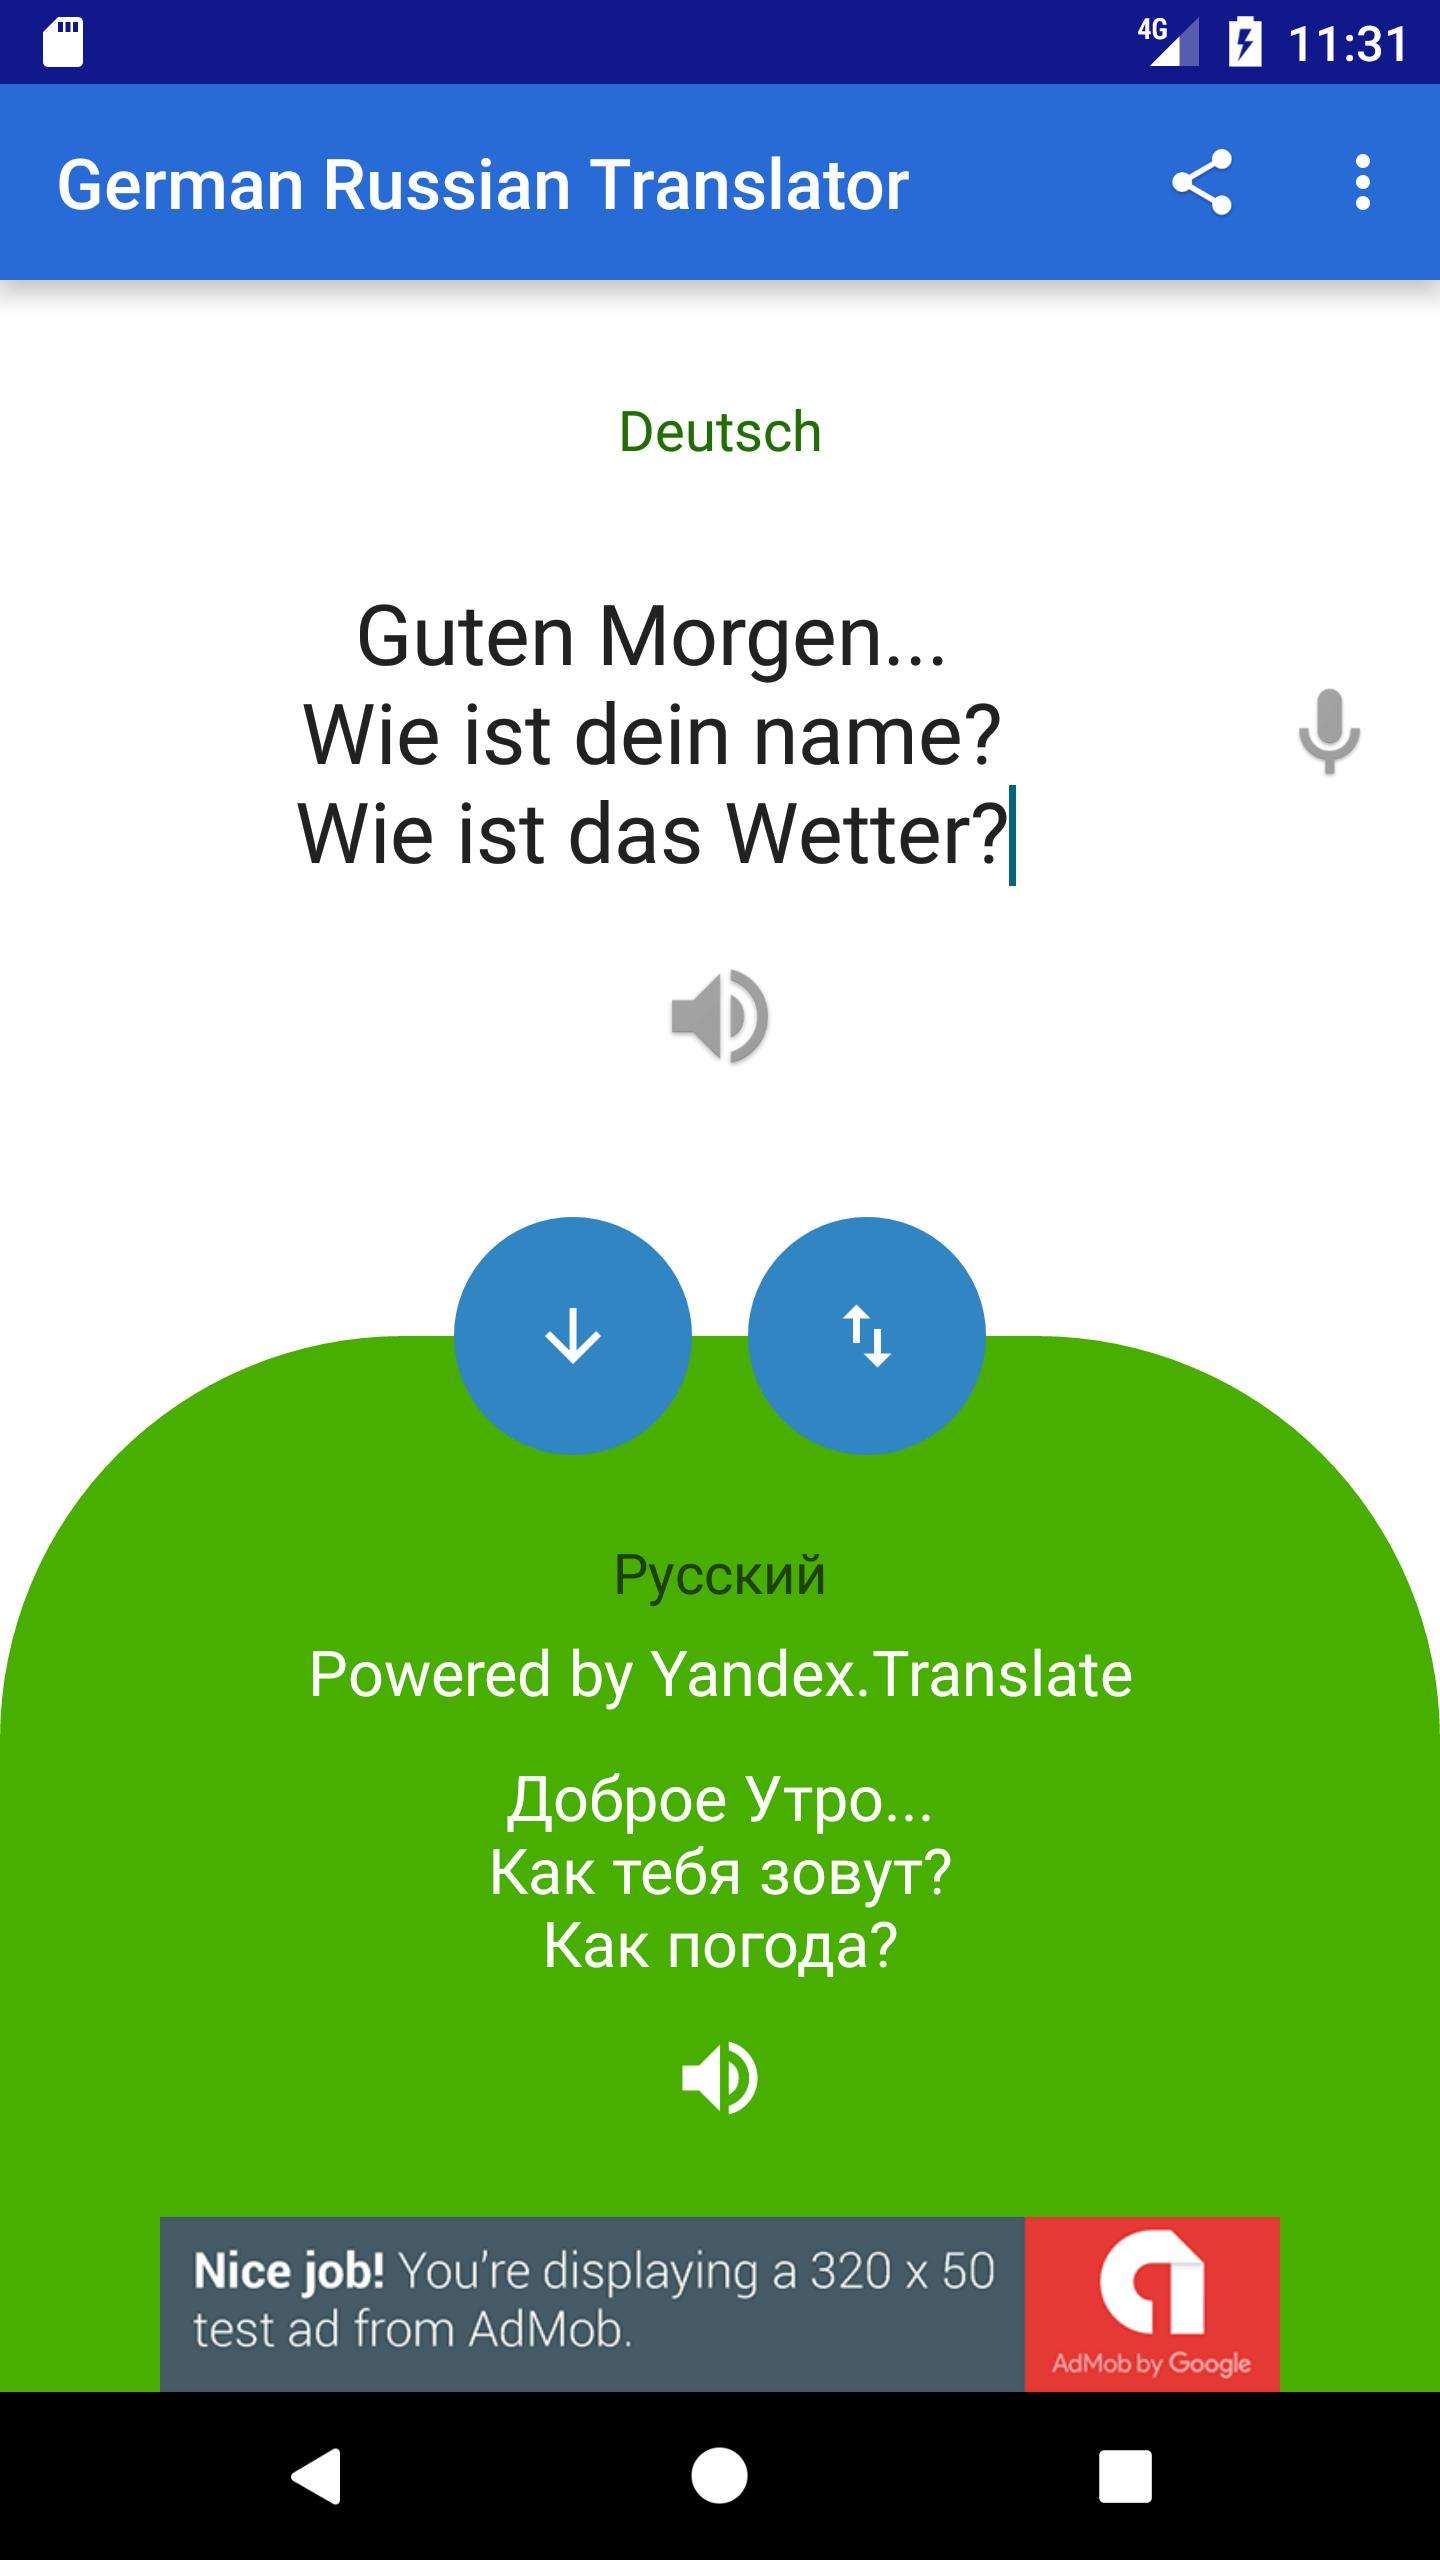 German Russian Translator For Android Apk Download